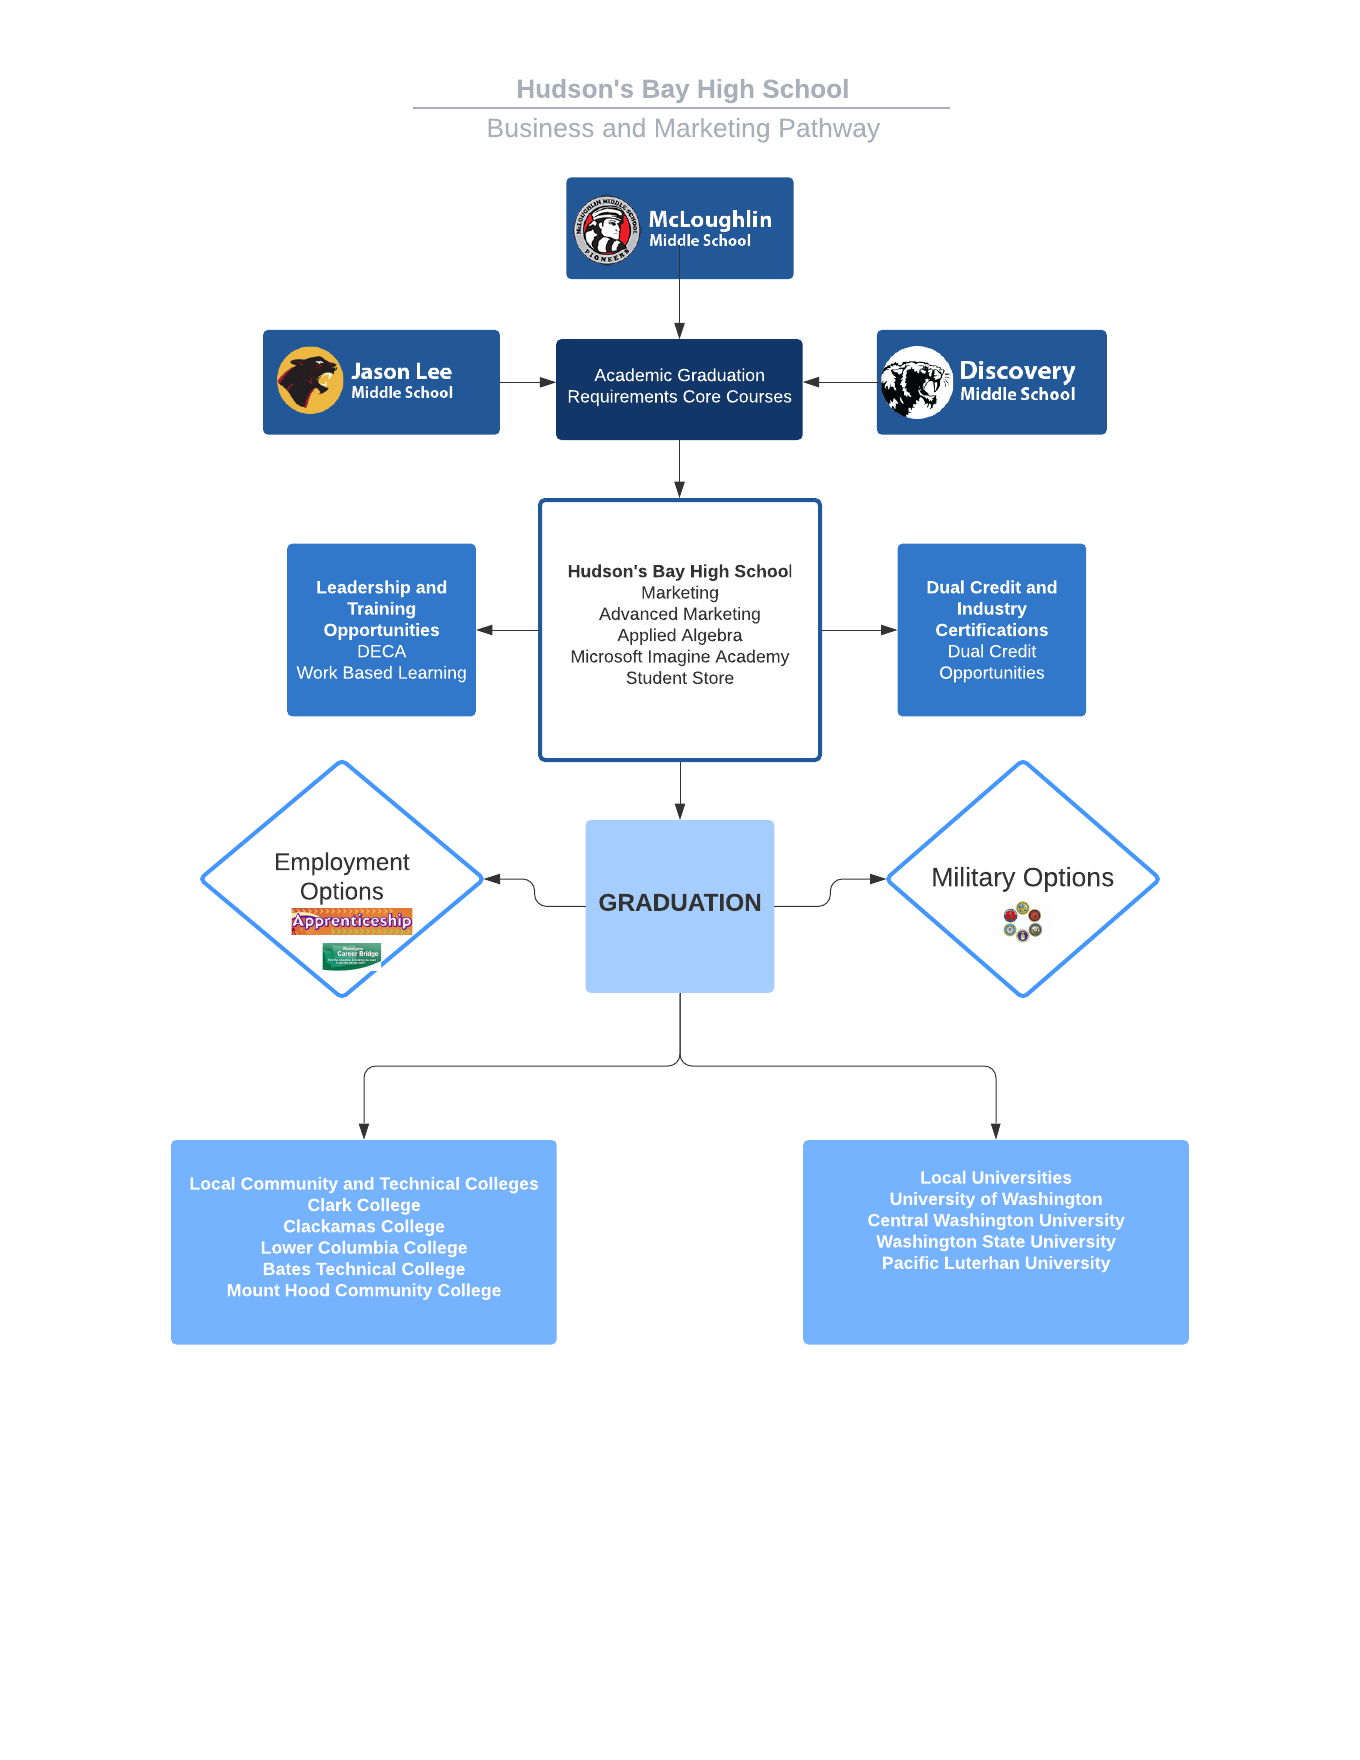 Hudson's Bay High School - Busniess and Marketing Pathway